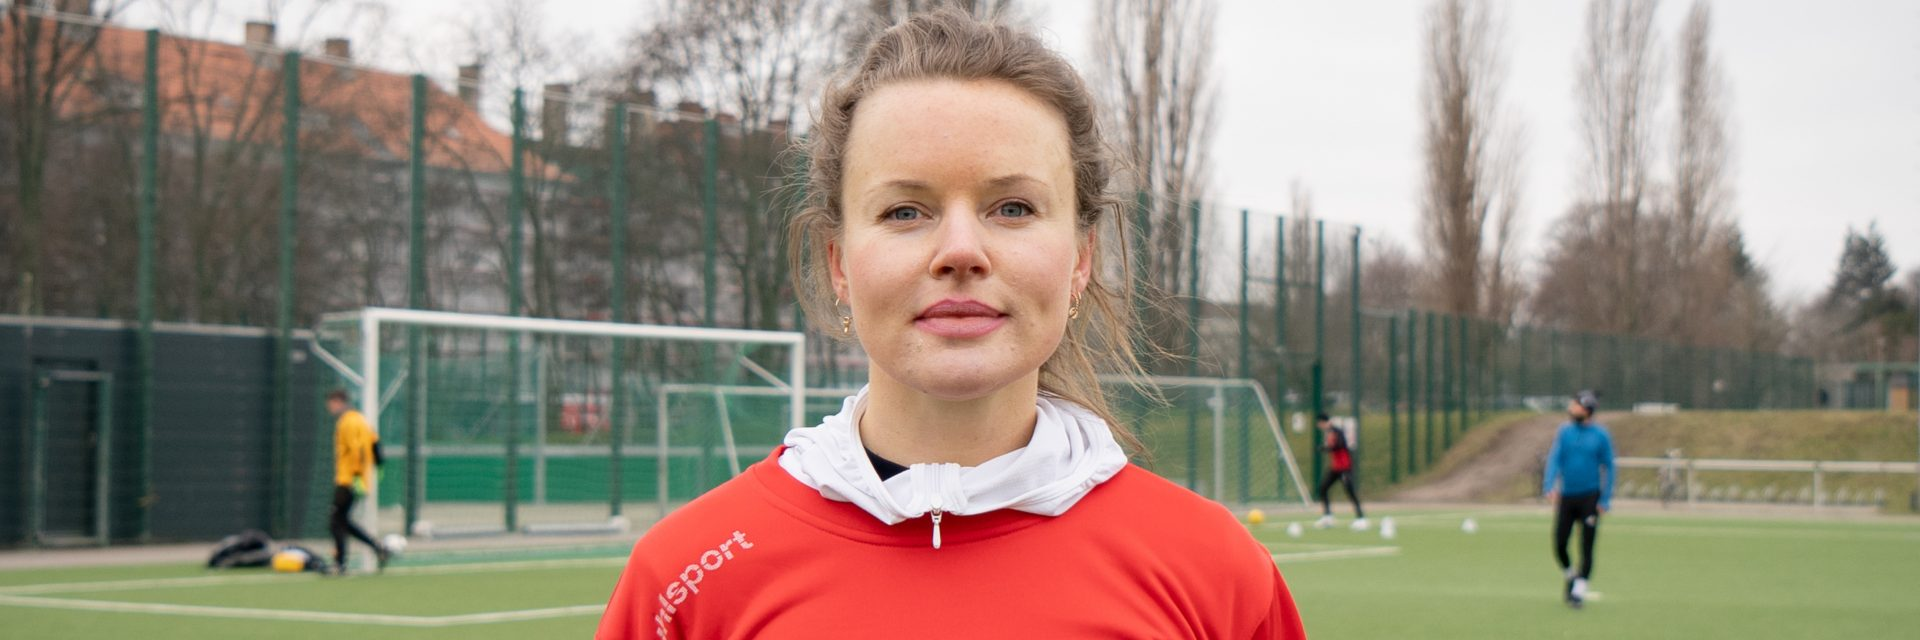 Katharina, Trainerin der SCORING GIRLS*